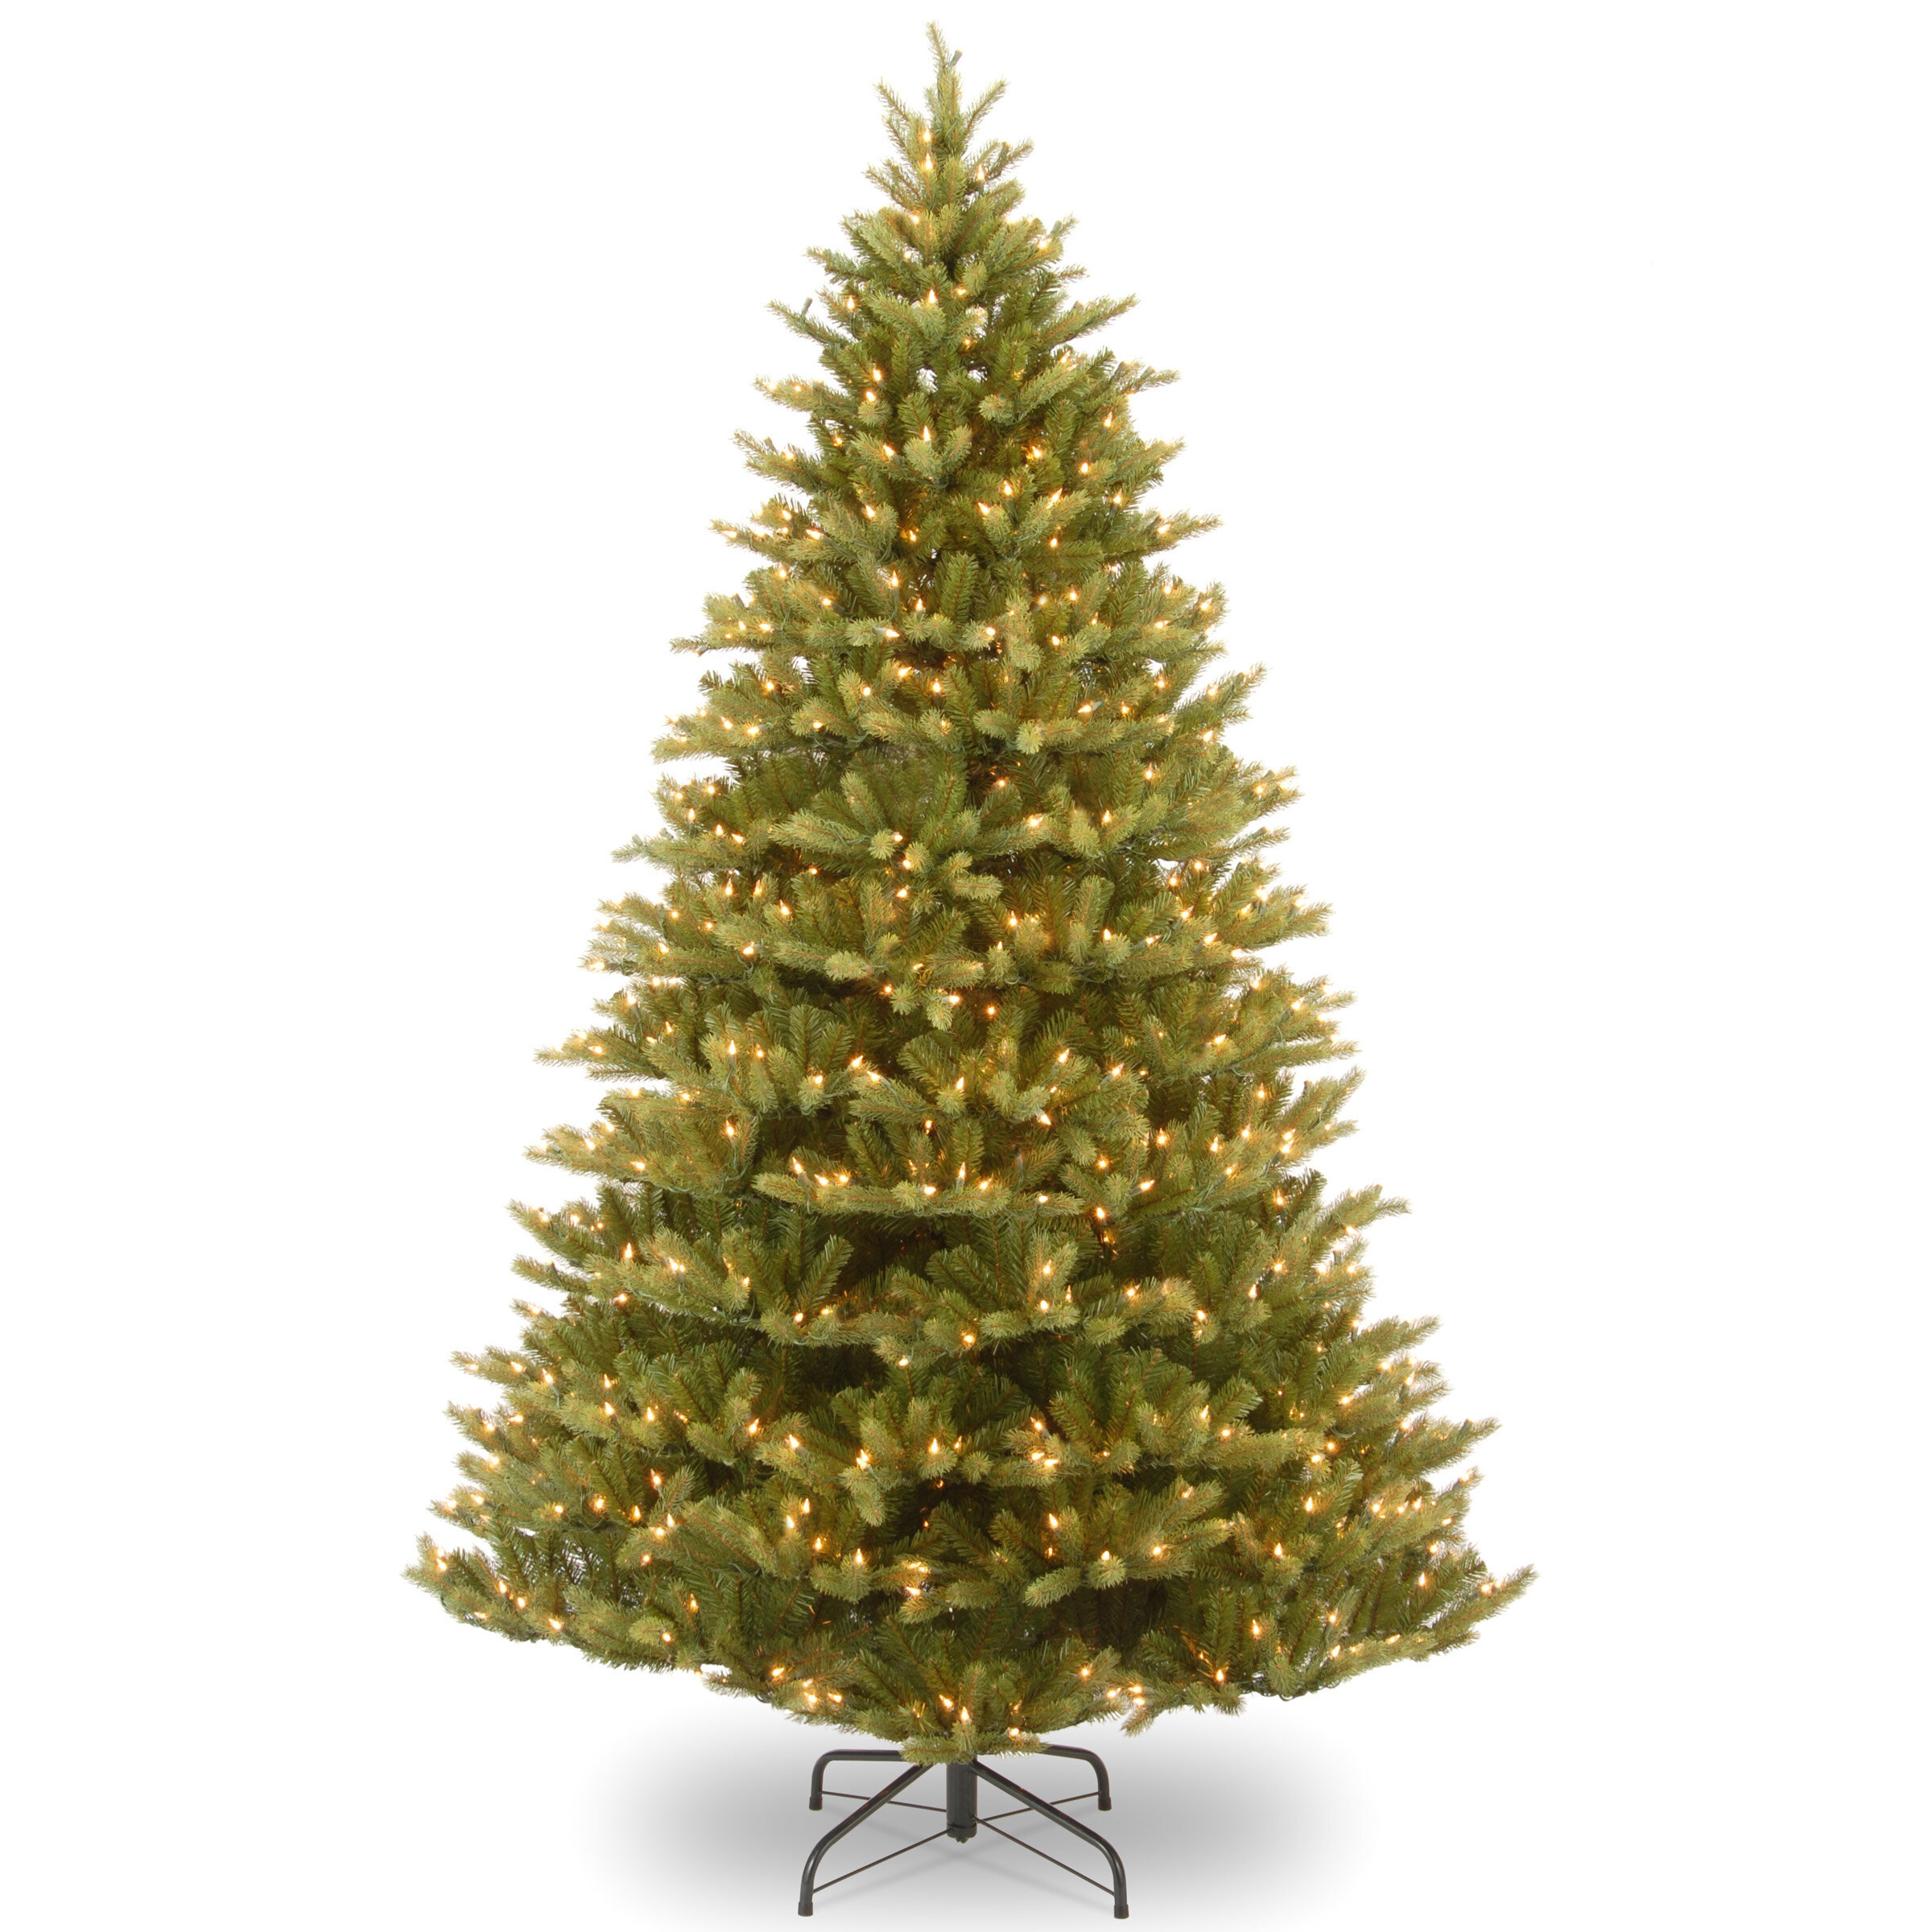 national tree co normandy fir 75 green artificial christmas tree with 1000 pre lit clear lights with stand reviews wayfair - 75 Pre Lit Christmas Tree